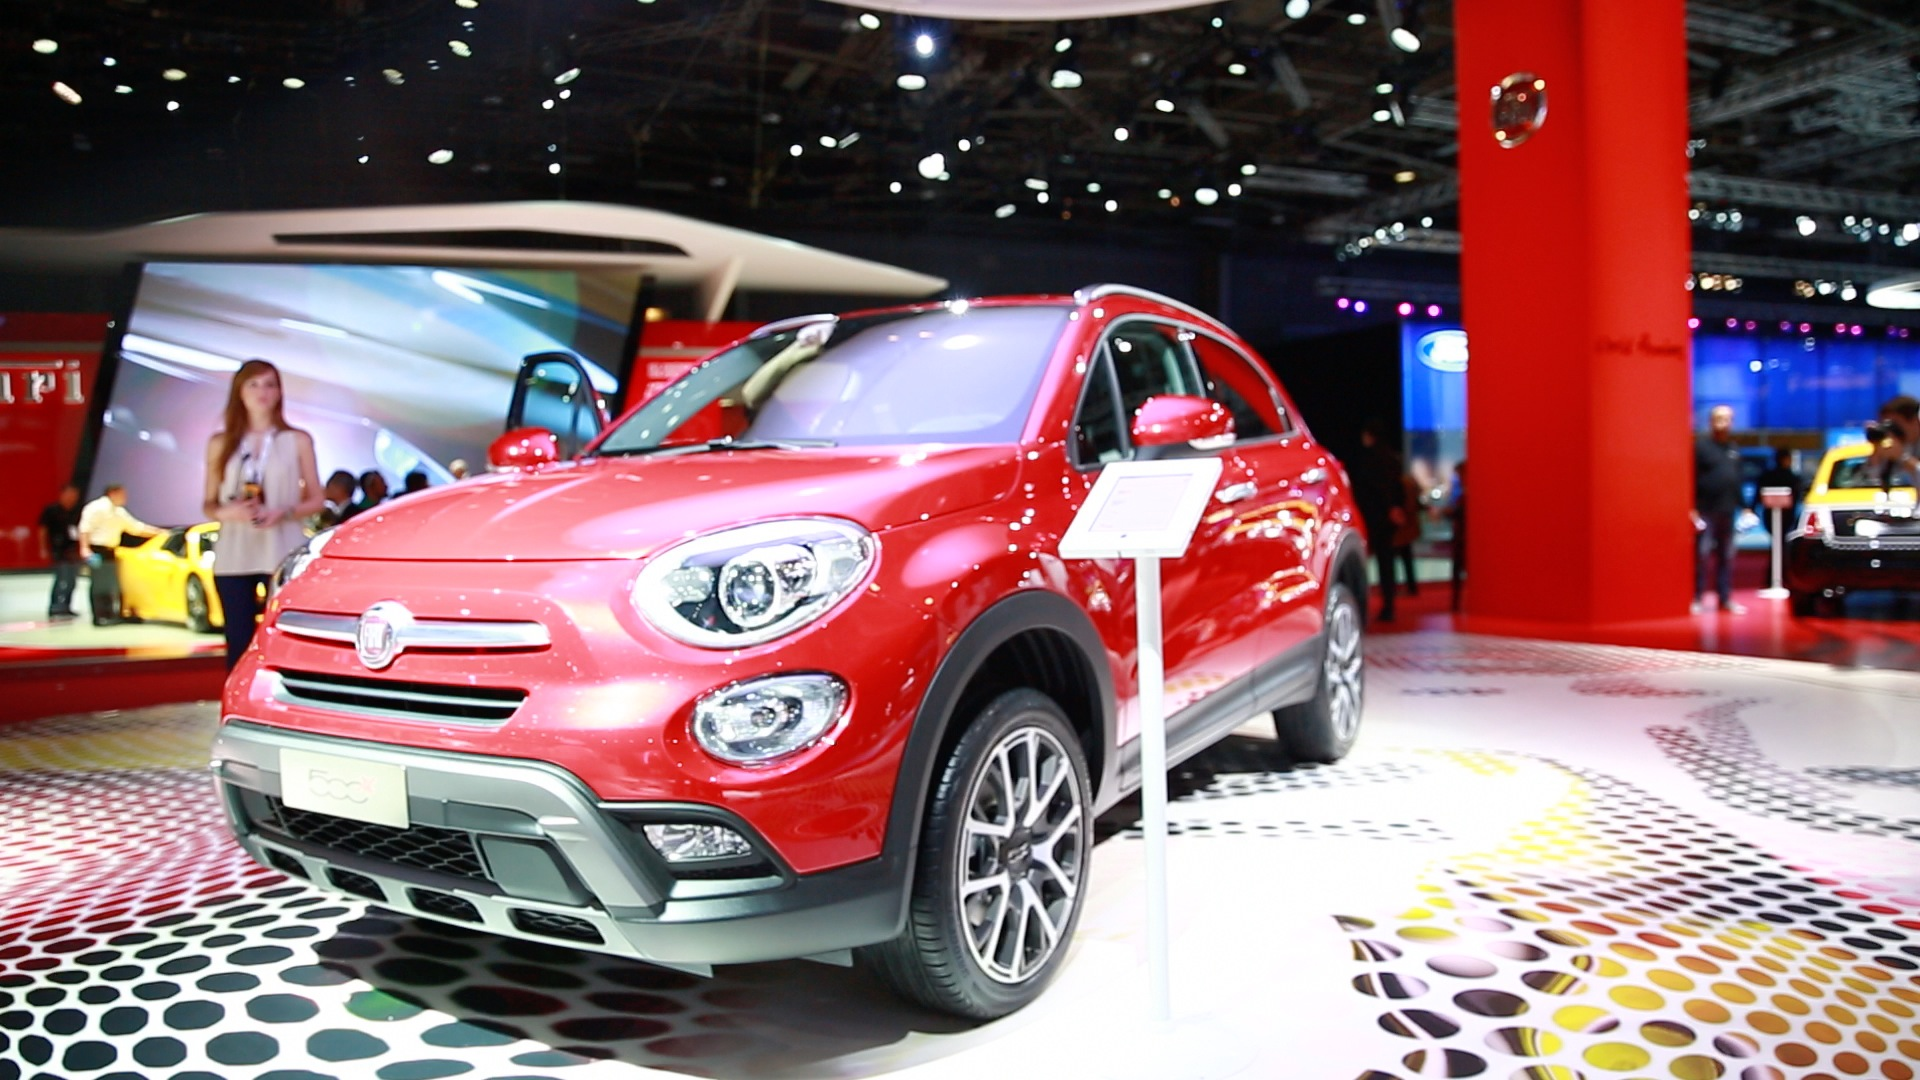 Video: The new Fiat 500x looks to extend the '500' brand